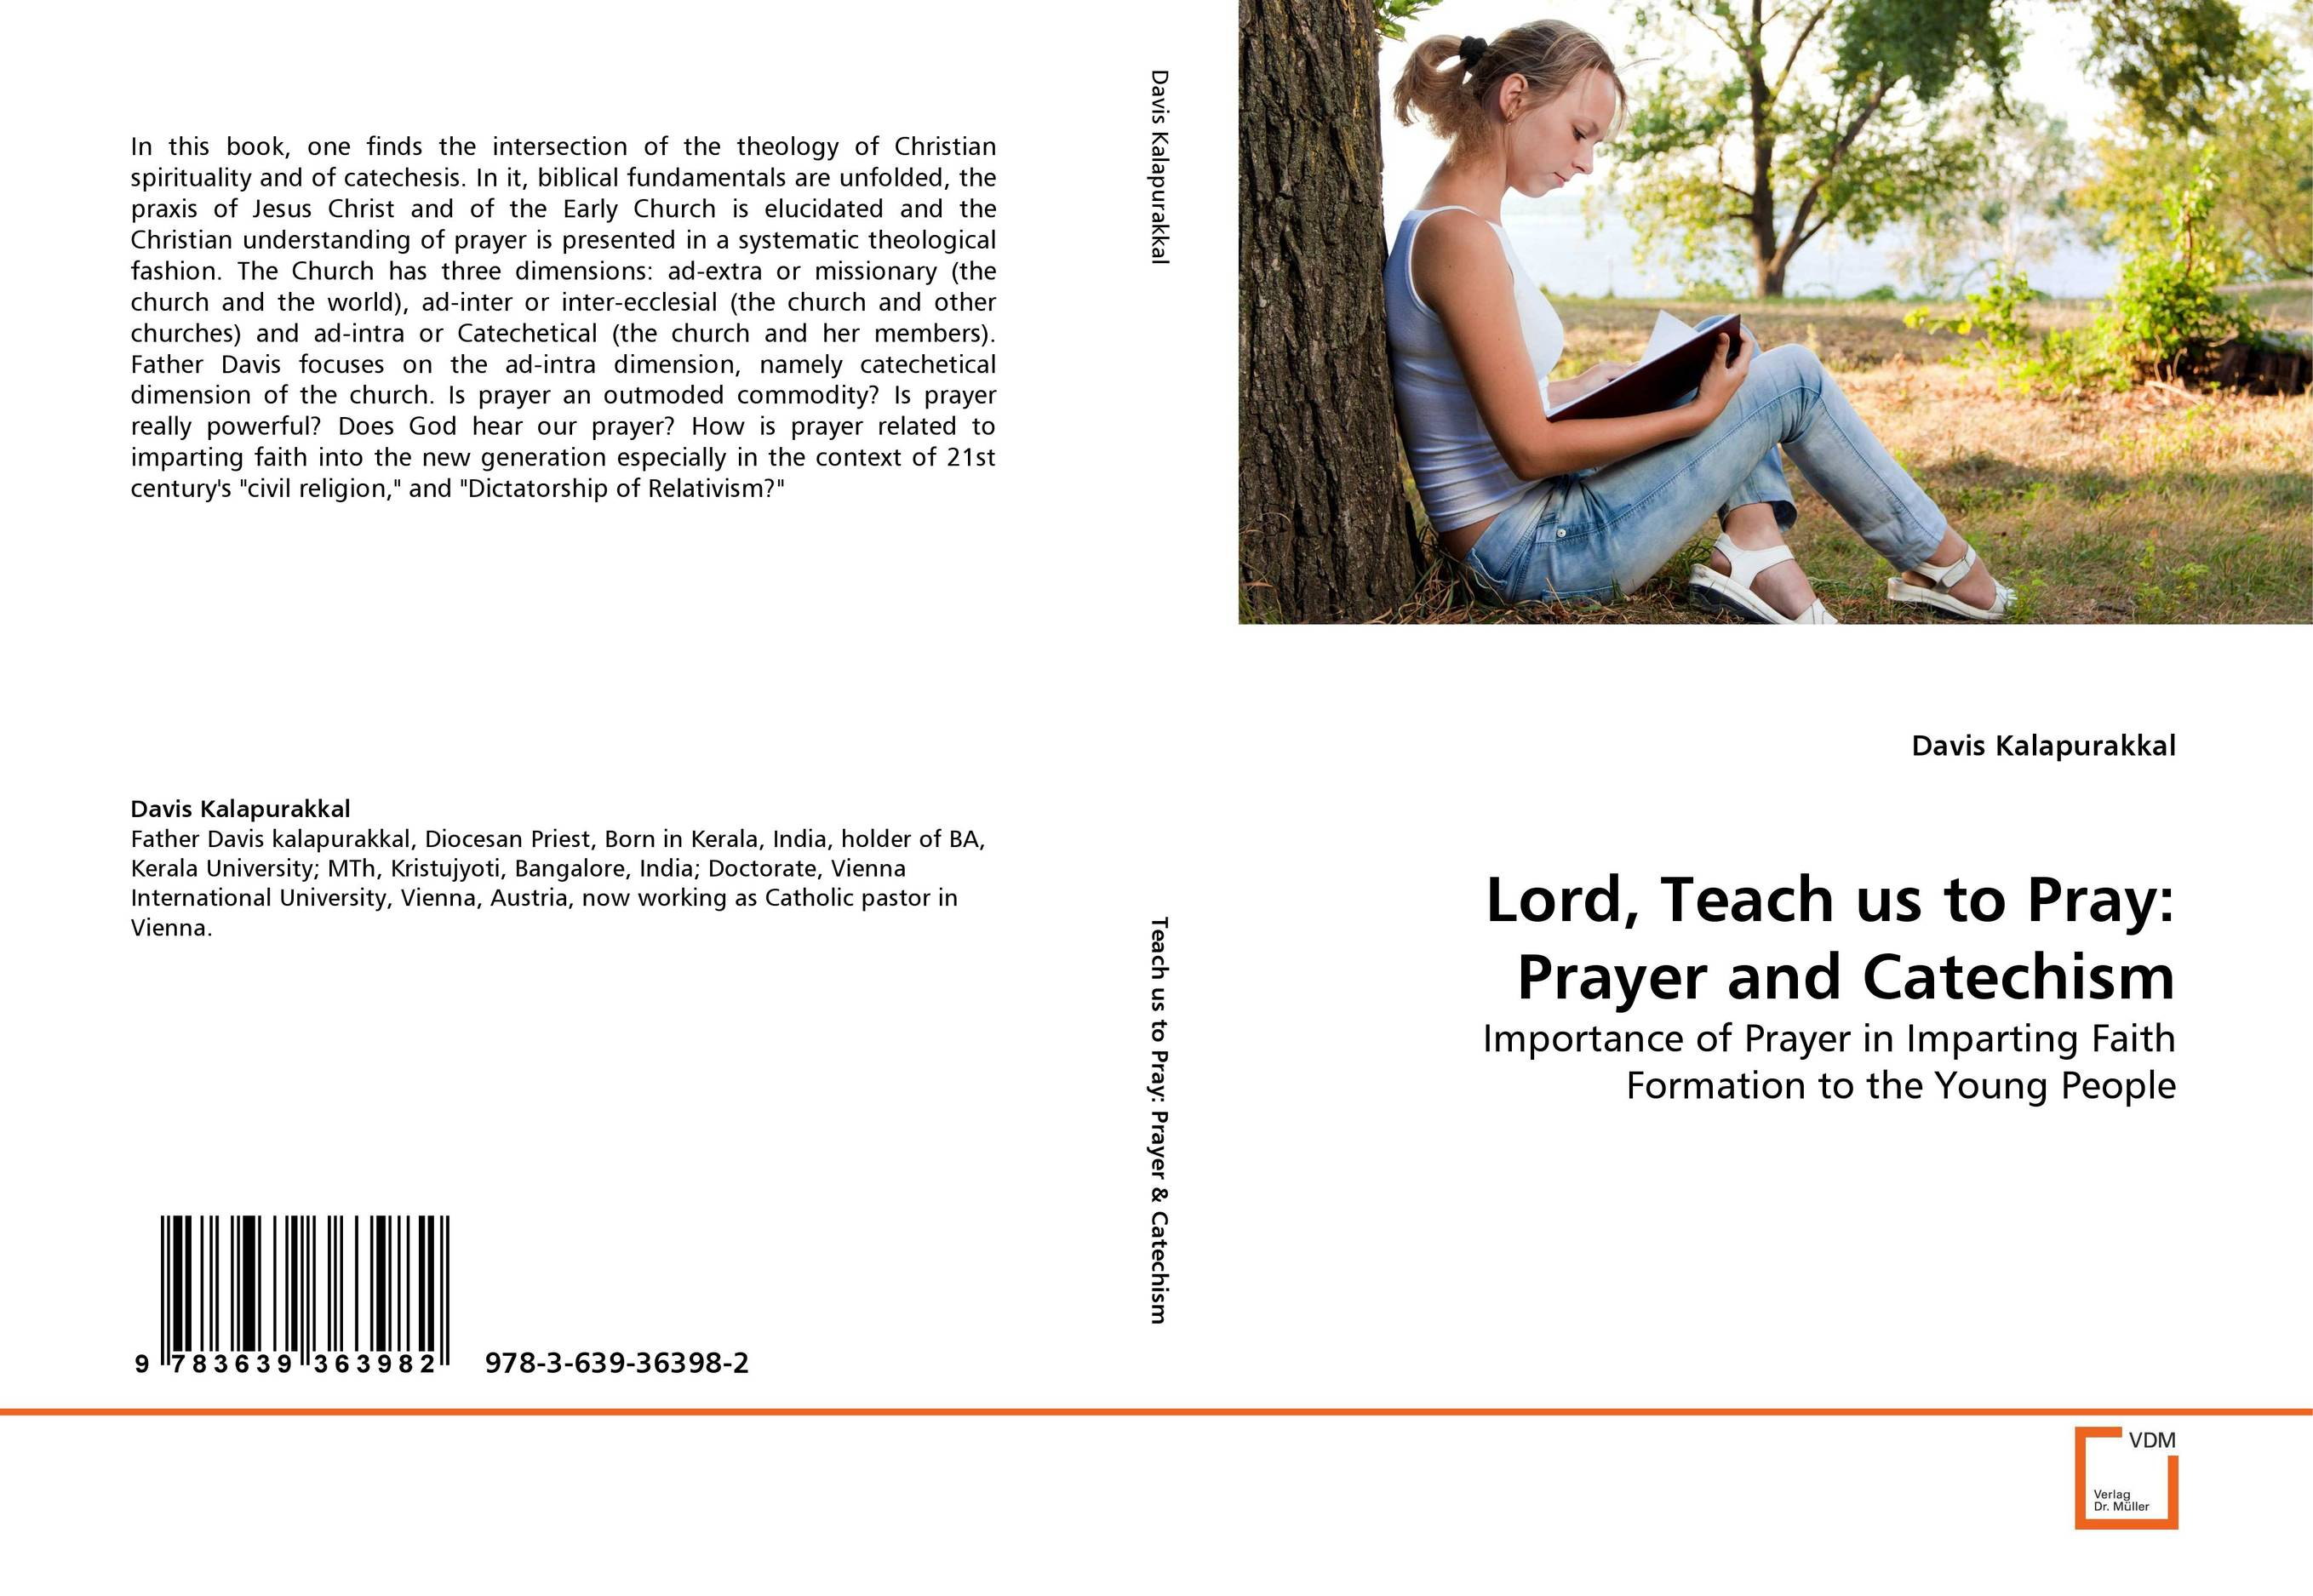 Lord, Teach us to Pray: Prayer and Catechism cr0017 czech 1996 world heritage roleta and shengnai bohm church 2 new 0528 grams